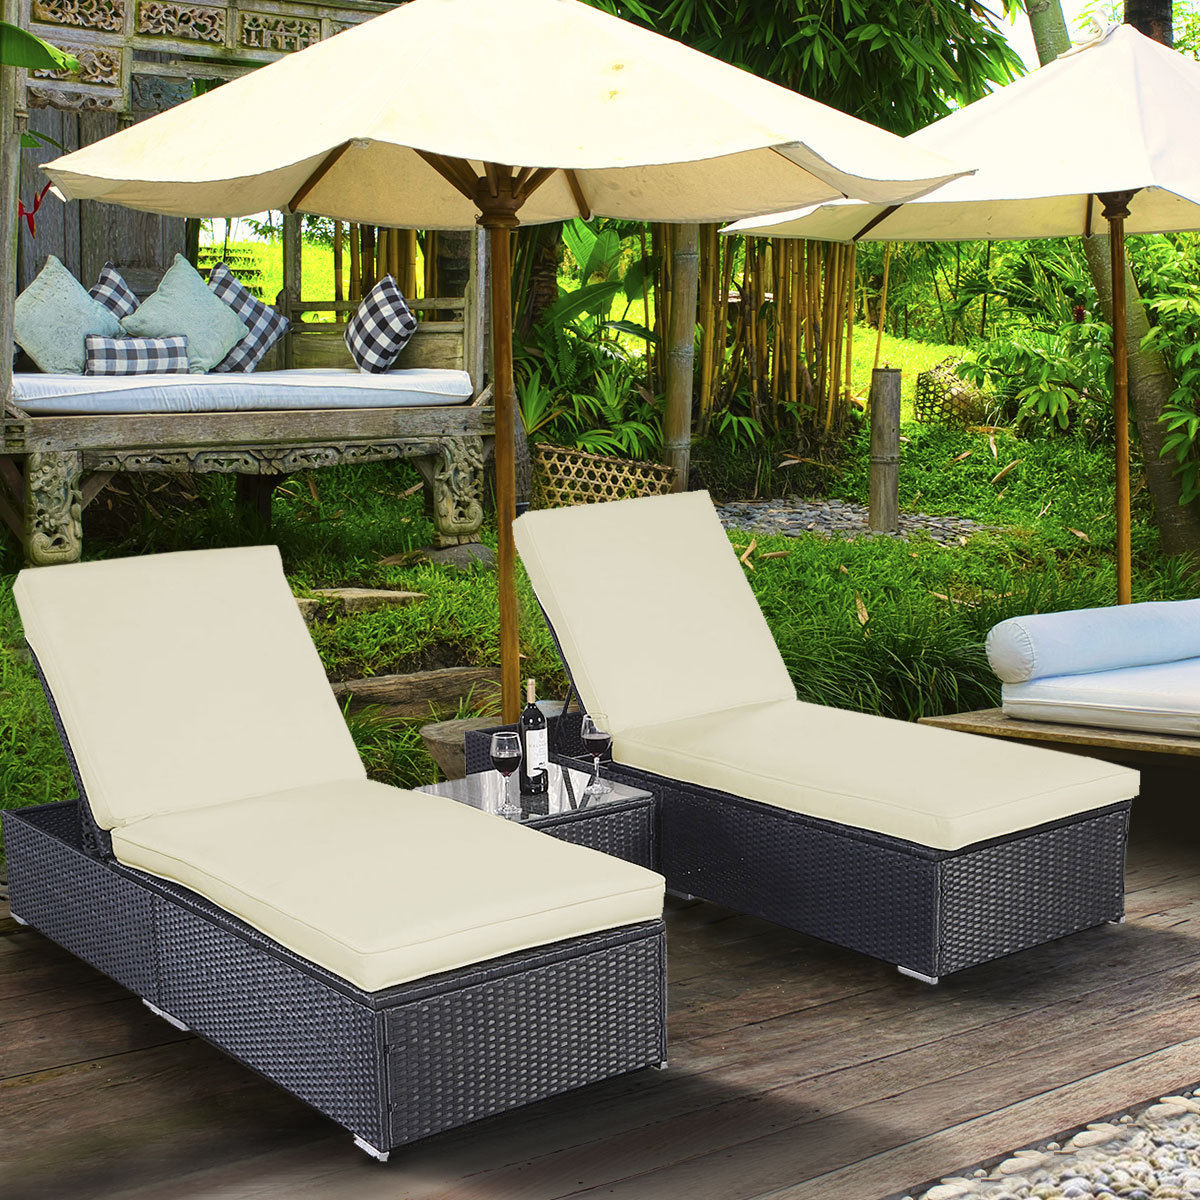 Superior Costway 3 Piece Wicker Rattan Chaise Lounge Chair Set Patio Steel Furniture  Black Wicker